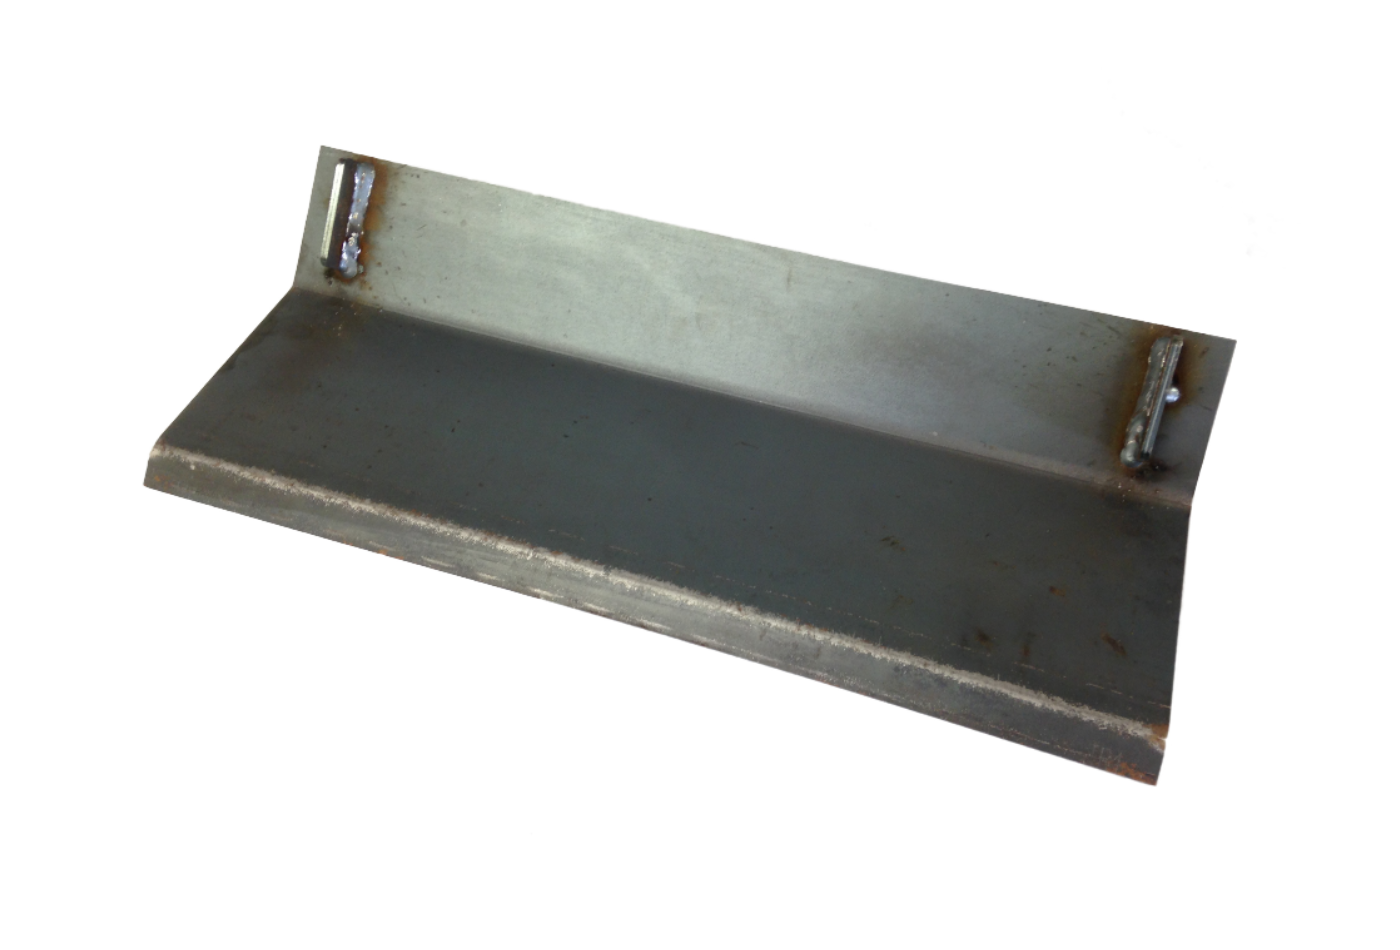 A replacement Baffle suitable for Clearview 650 stoves.